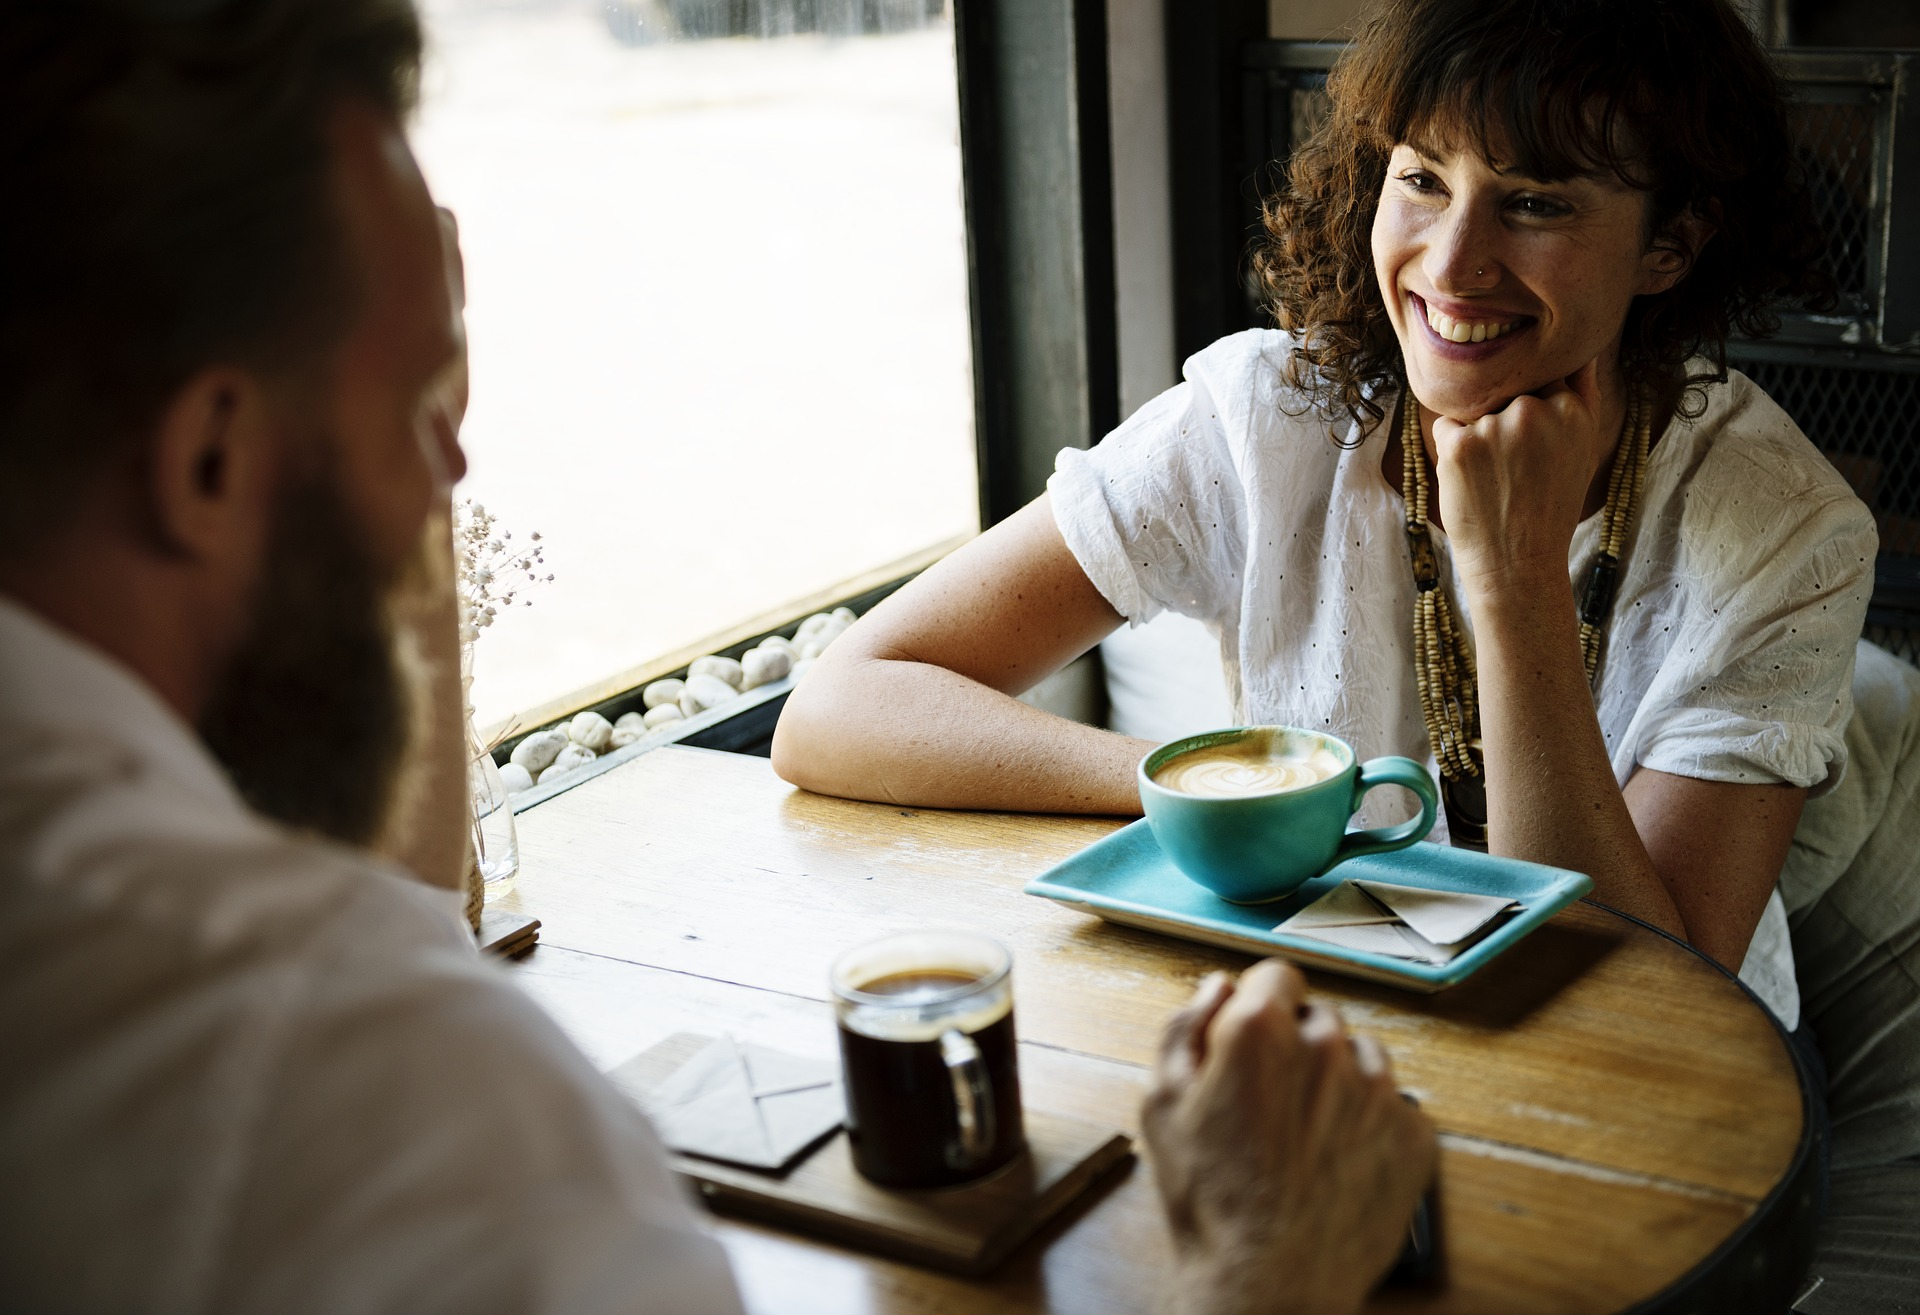 Man and a woman sitting having a coffee together in a cafe, woman is smiling